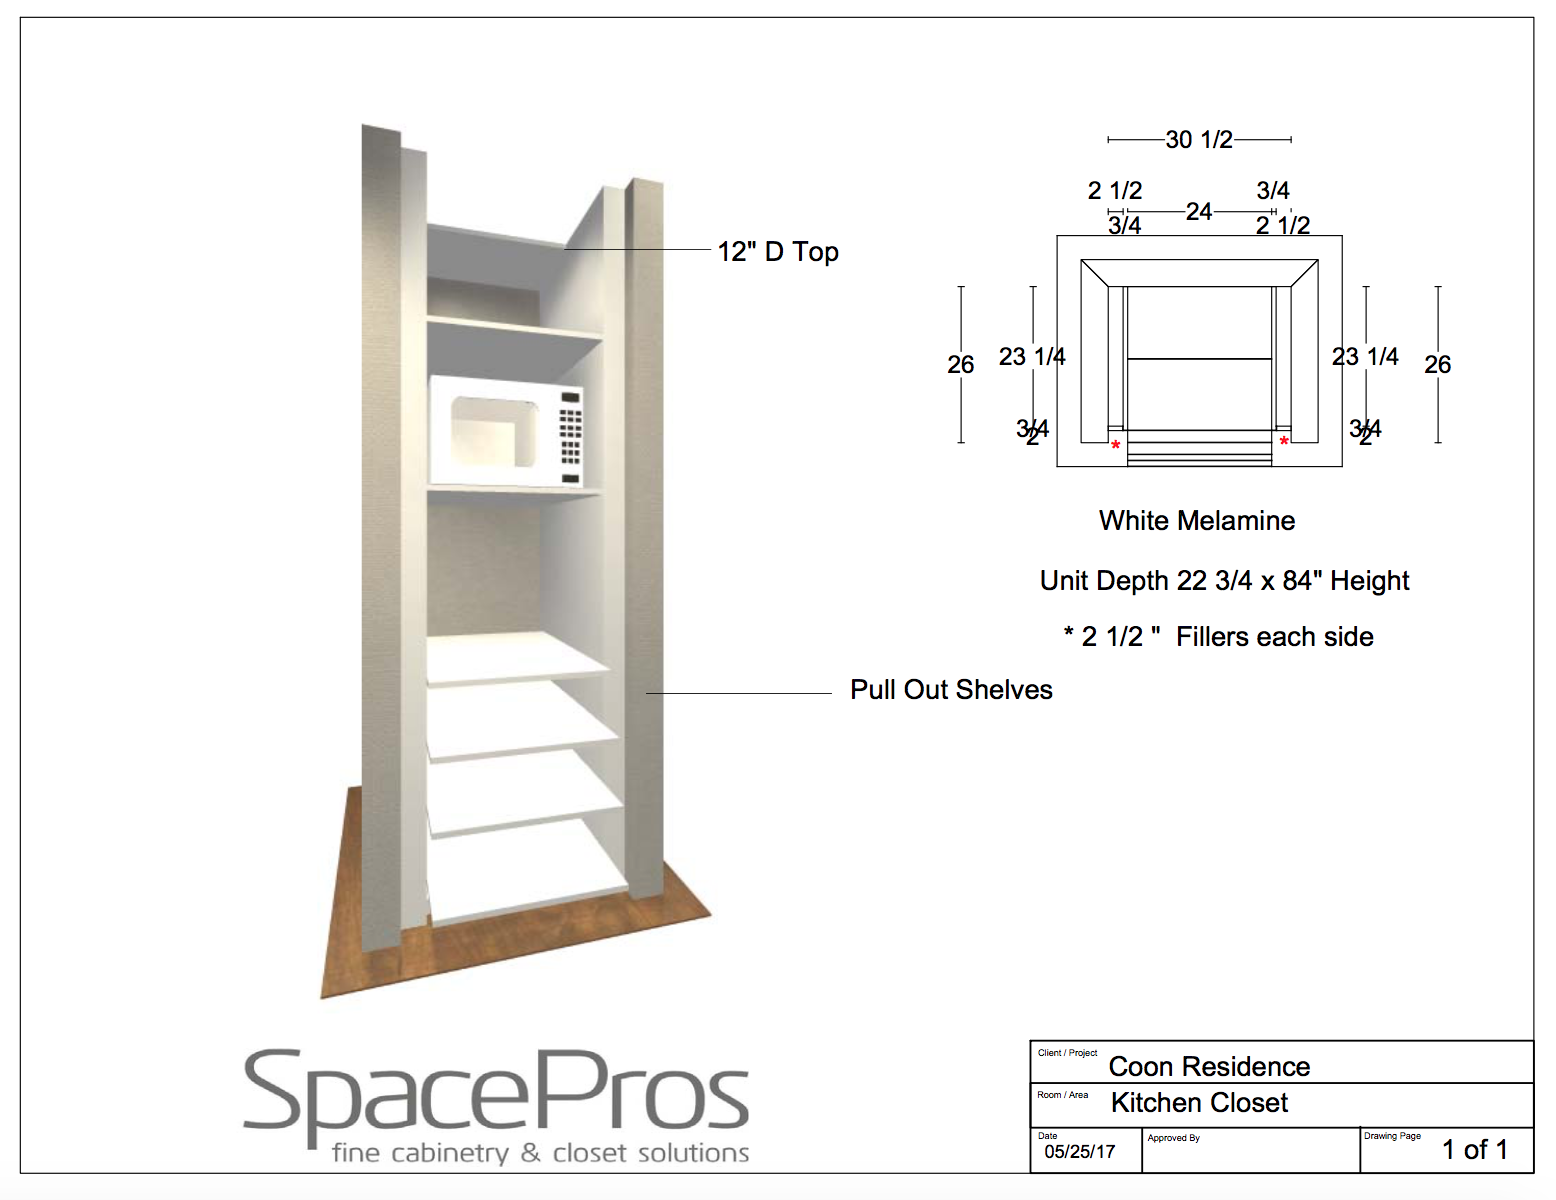 free plans How To Build A Hidden Coffee Station and Microwave - shabbyfufublog.com